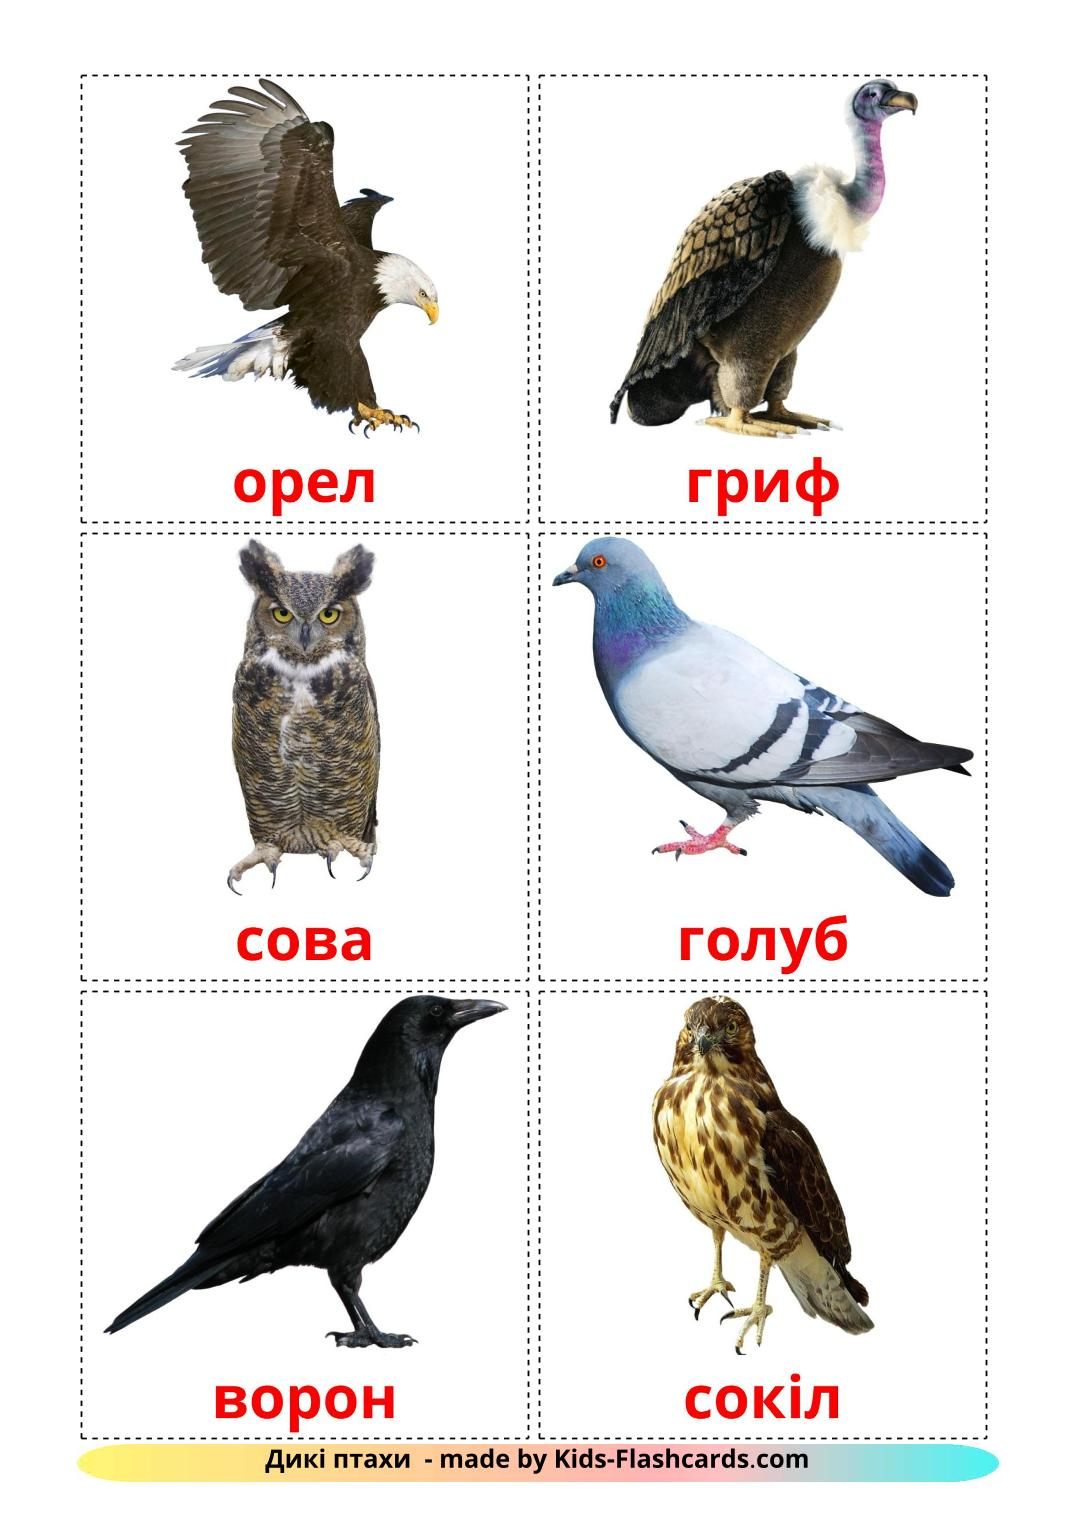 Wild birds - 17 Free Printable ukrainian Flashcards